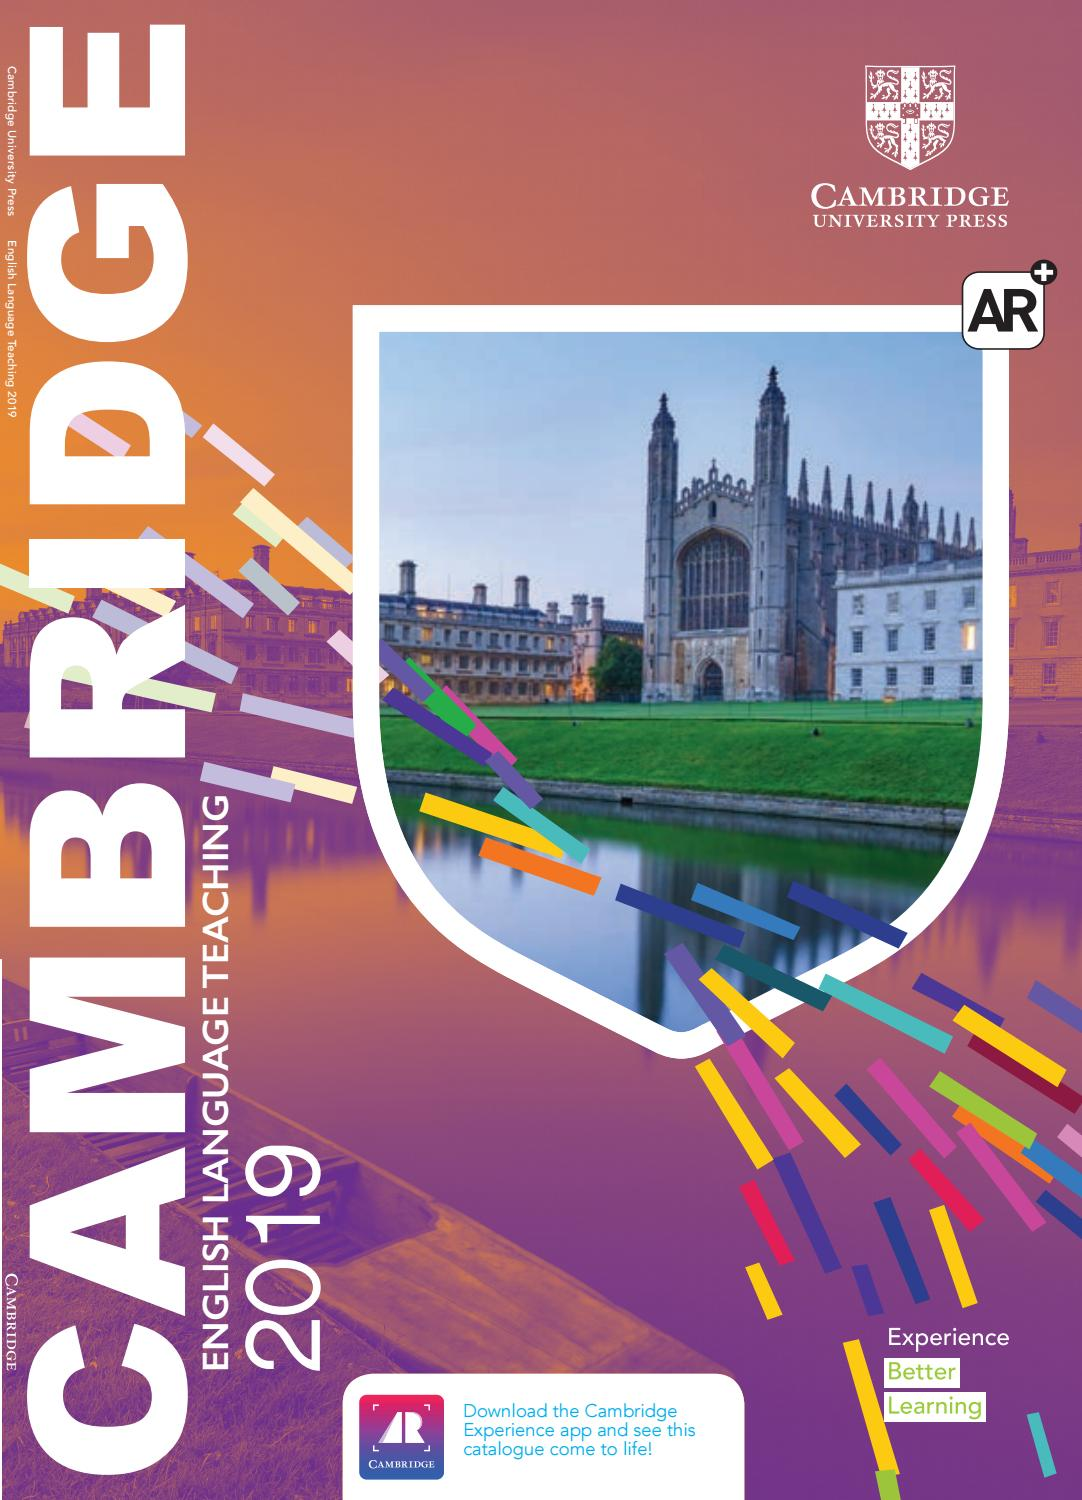 2019 ELT Cambridge University Press Catalogue - Asia by Cambridge